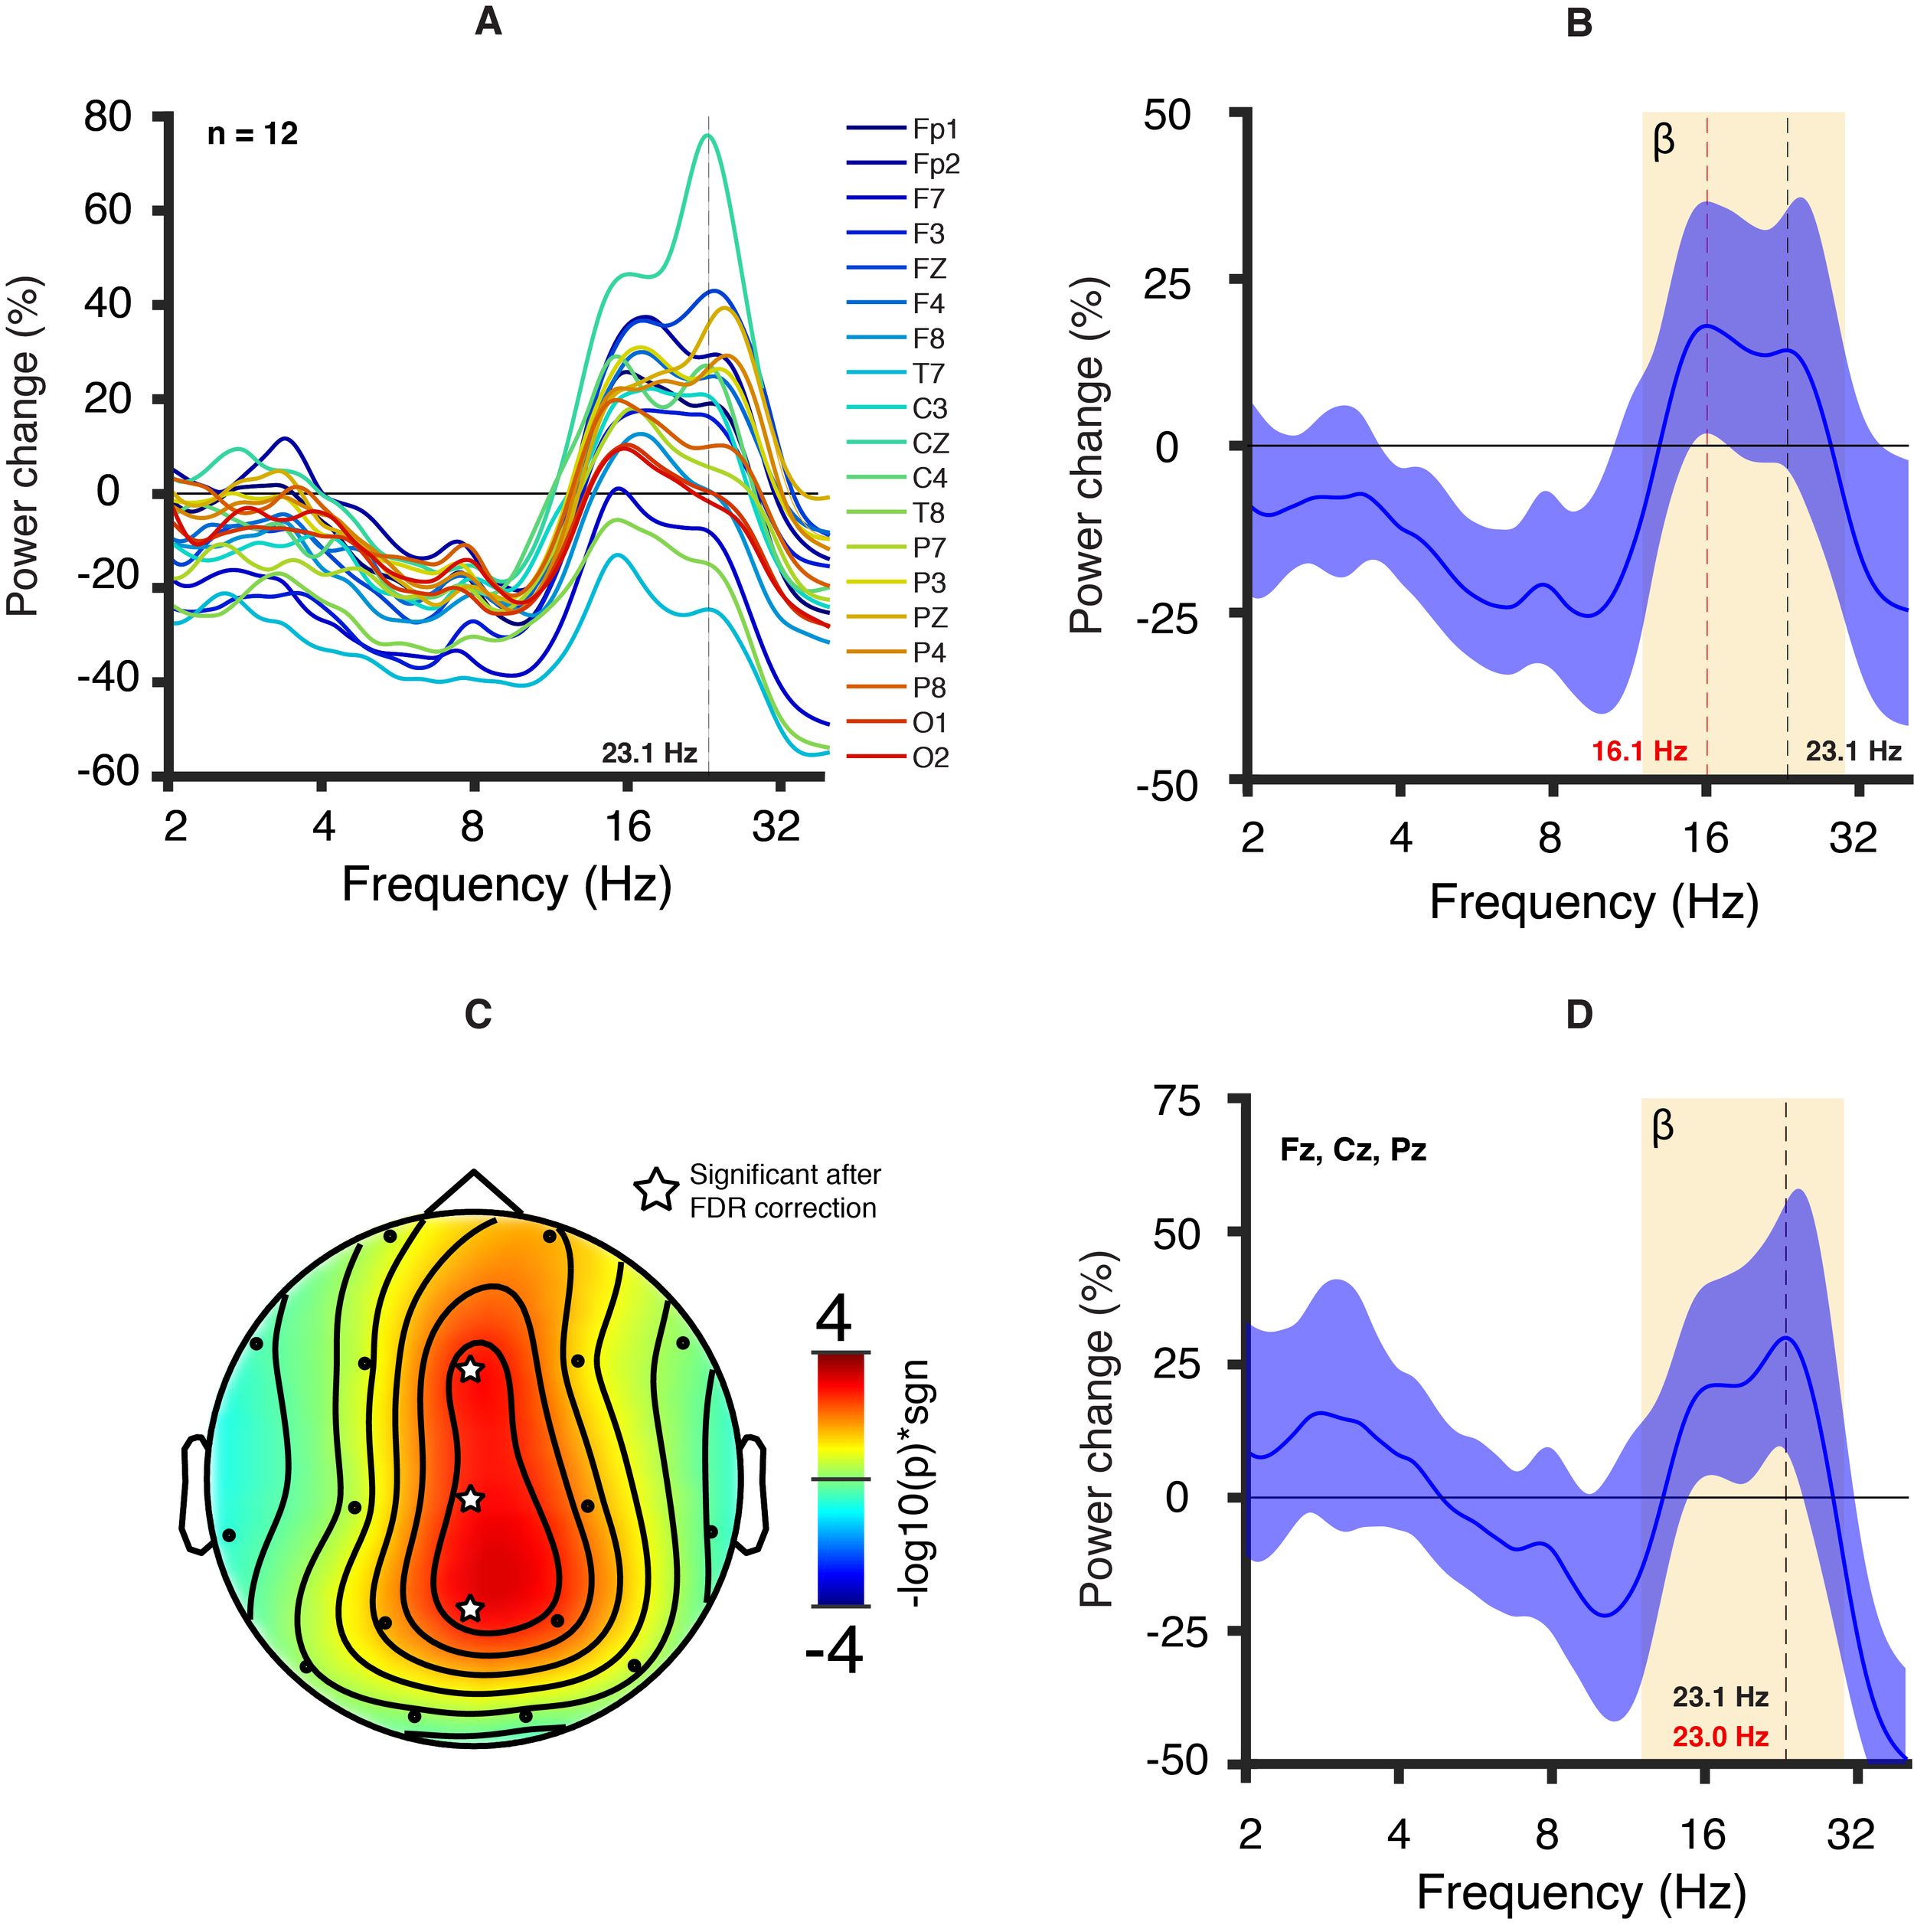 Figure 4, Frohlich et al. 2019 Molecular Autism.  EEG signature of pharmacological GABAA receptor modulation in healthy adult participants. Healthy adult participants ( n  = 12) were challenged orally with a GABAA PAM (5 mg midazolam).  a  Average power change in all channels 1 h following drug administration referenced to baseline (absolute power averaged across participants). Most channels displayed an increase in power in the beta band.  b  Channel-averaged power change. The colored highlight represents the 95% confidence interval. The average power change appears to largely plateau between the peak power change (16.1 Hz, red vertical line) and the Dup15q syndrome peak frequency (23.1 Hz, black vertical line).  c  Scalp topography of the −log10( p  value) multiplied by the sign of the  t -statistic from a two-tailed  t  test at 23.1 Hz. Three central channels (Fz, Cz, and Pz, indicated with a star symbol) survive an FDR correction for multiple channels ( p  value threshold = 3 × 10−3).  d  Power change averaged across central channels. We visualized the average power change for those channels that survived the FDR correction at 23.1 Hz. The colored highlight represents the 95% confidence interval. The power change peaks at 23.0 Hz (red vertical line), very close to the Dup15q syndrome peak frequency (23.1 Hz, black vertical line; Cf. Fig.  1 a).